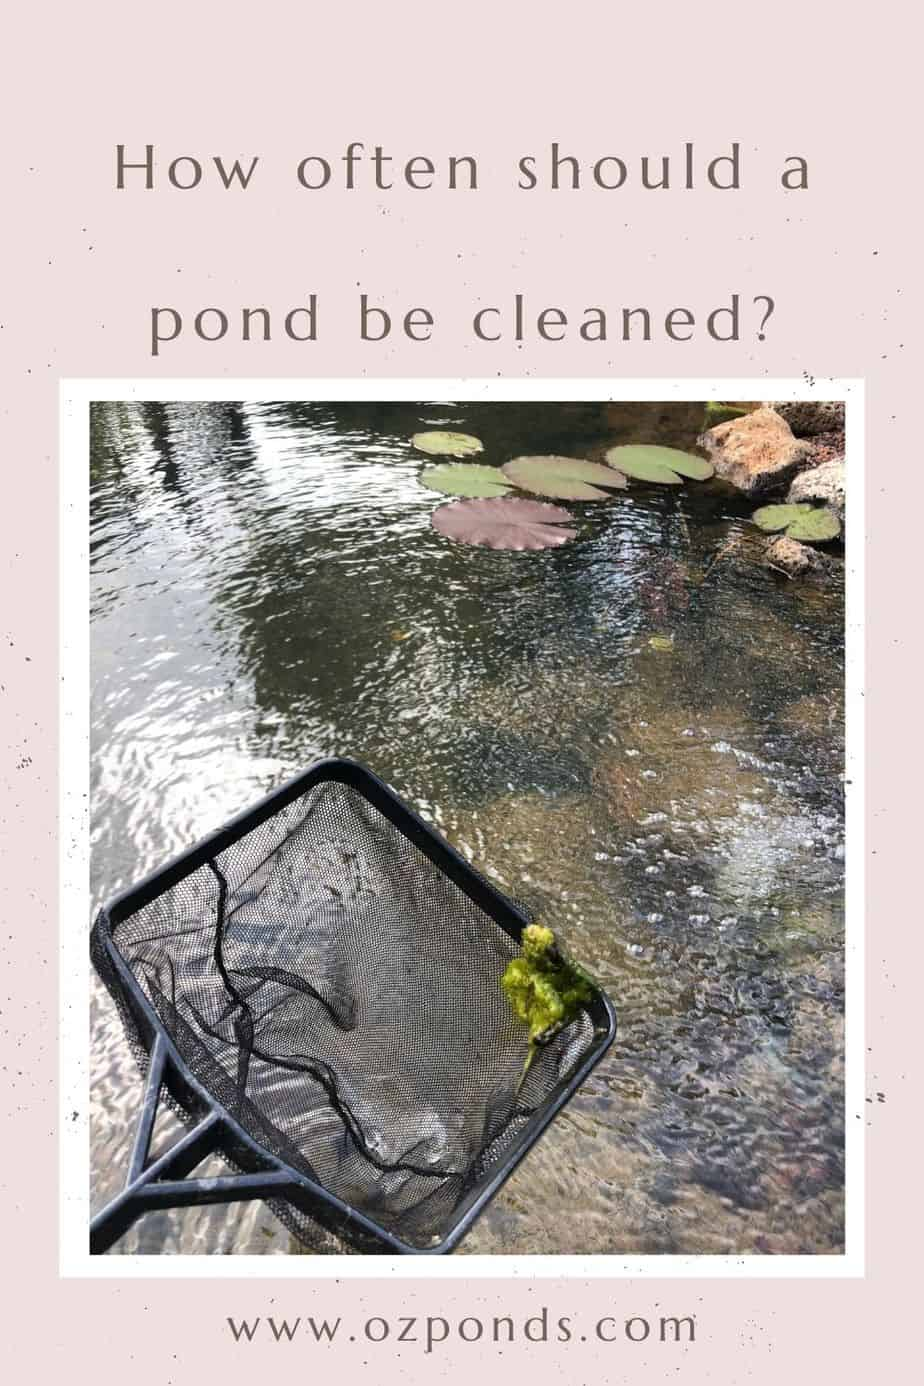 How often should a pond be cleaned?